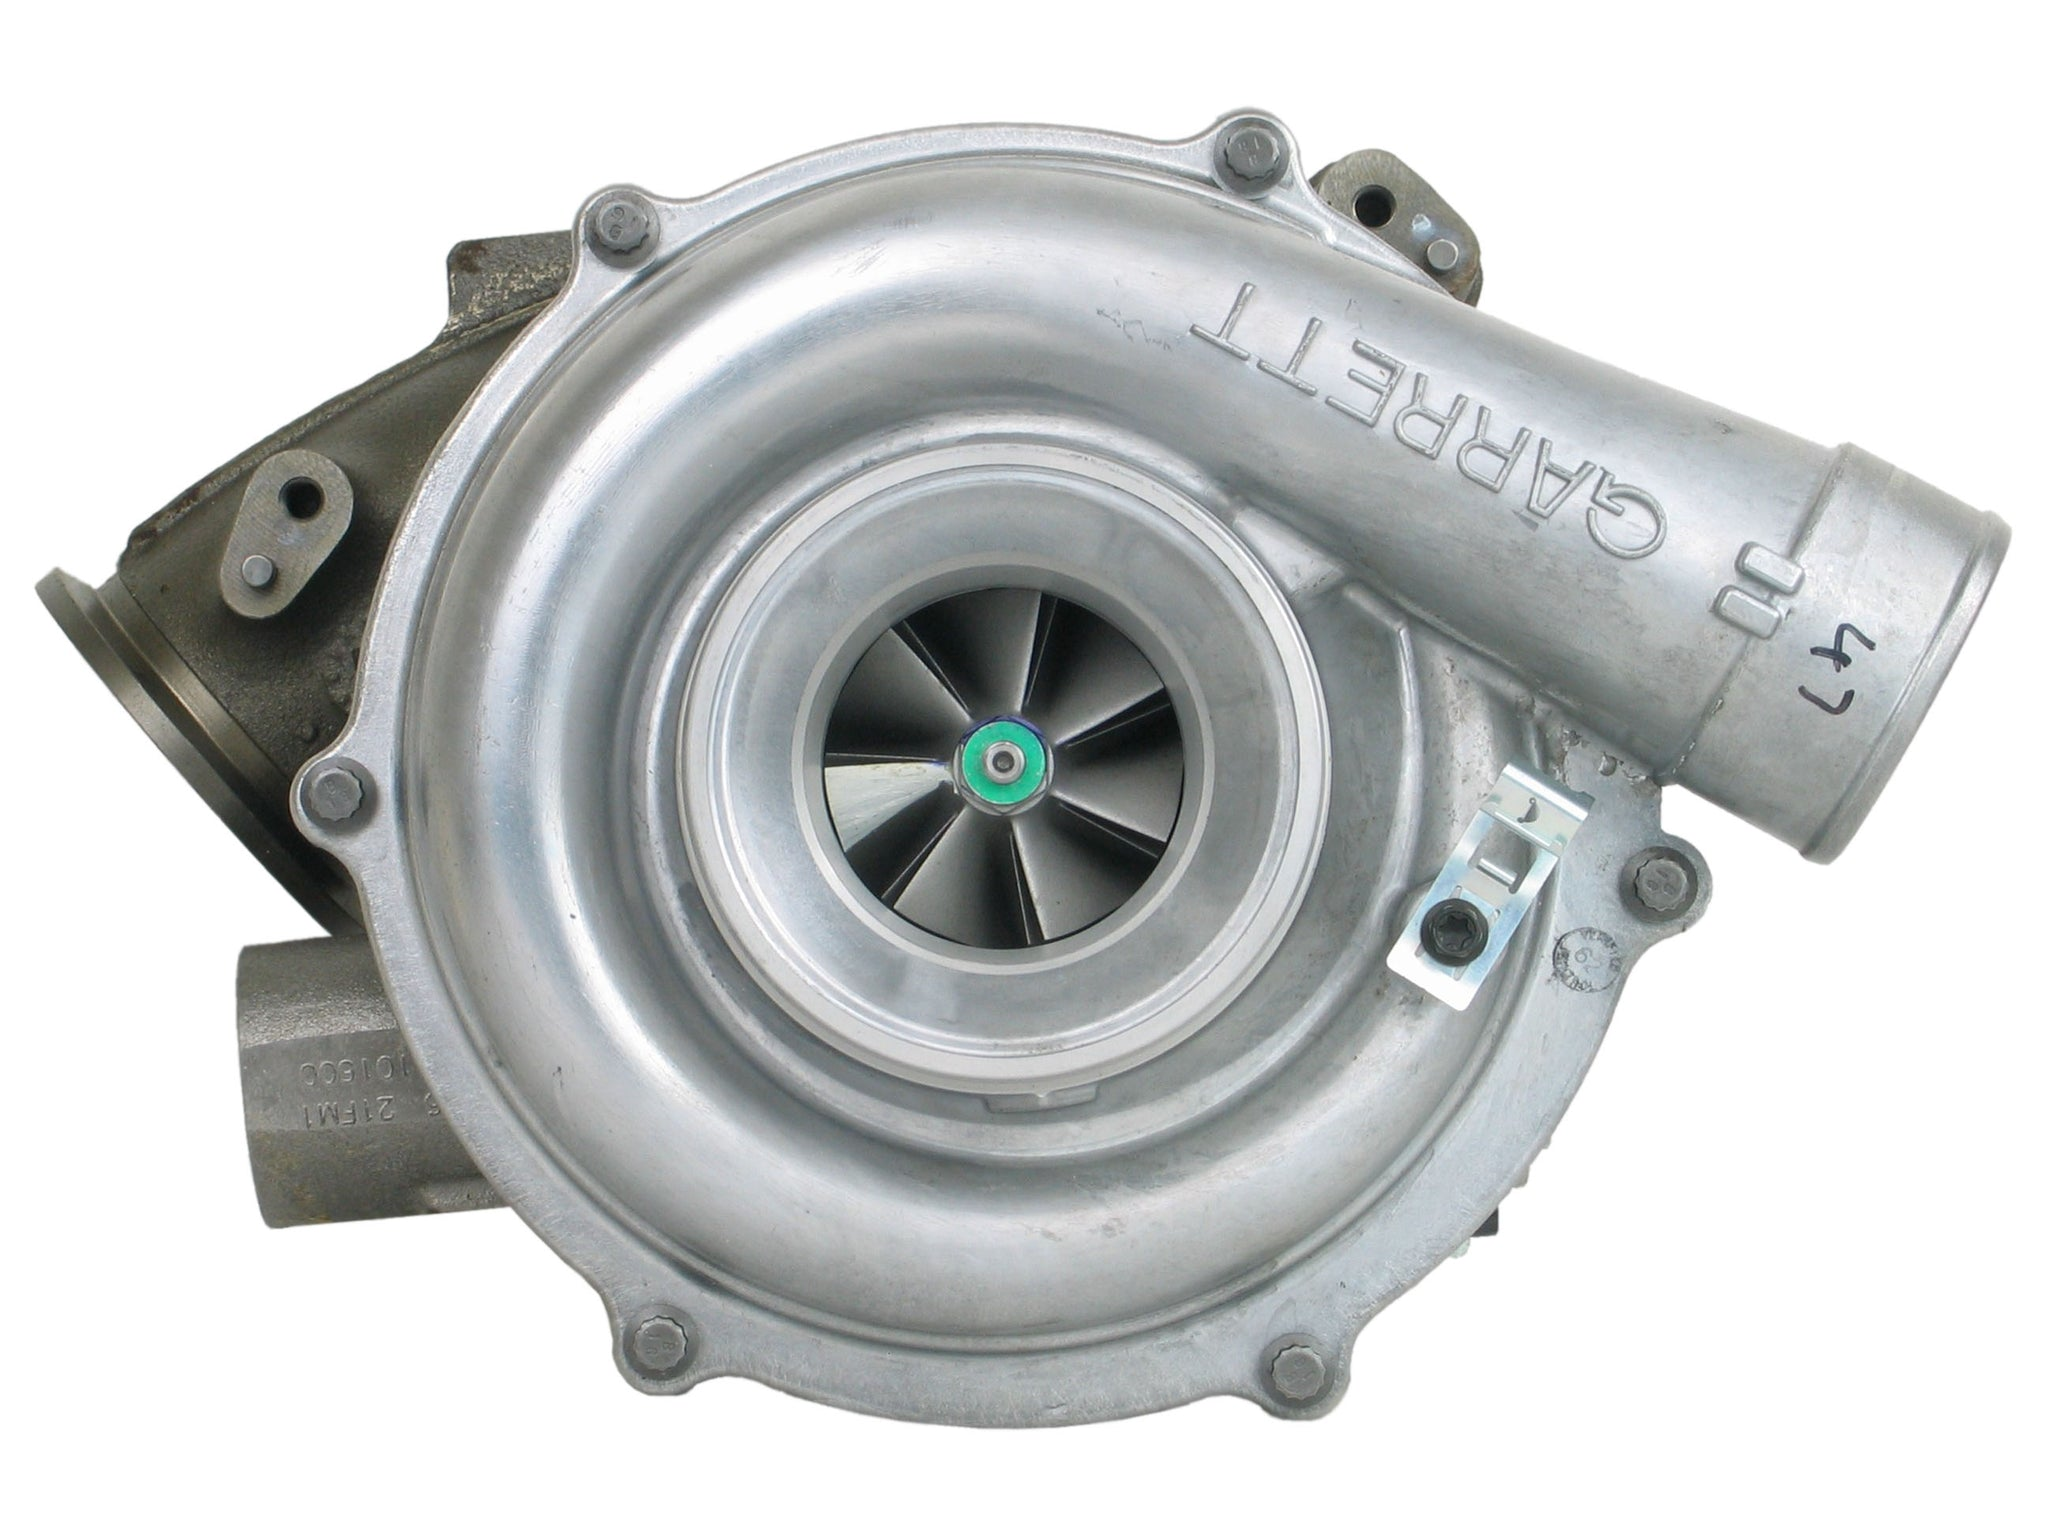 Ford F-Series Super Duty Excursion Econoline 6.0L 743250-5013 NEW Garrett Turbo - TurboTurbos